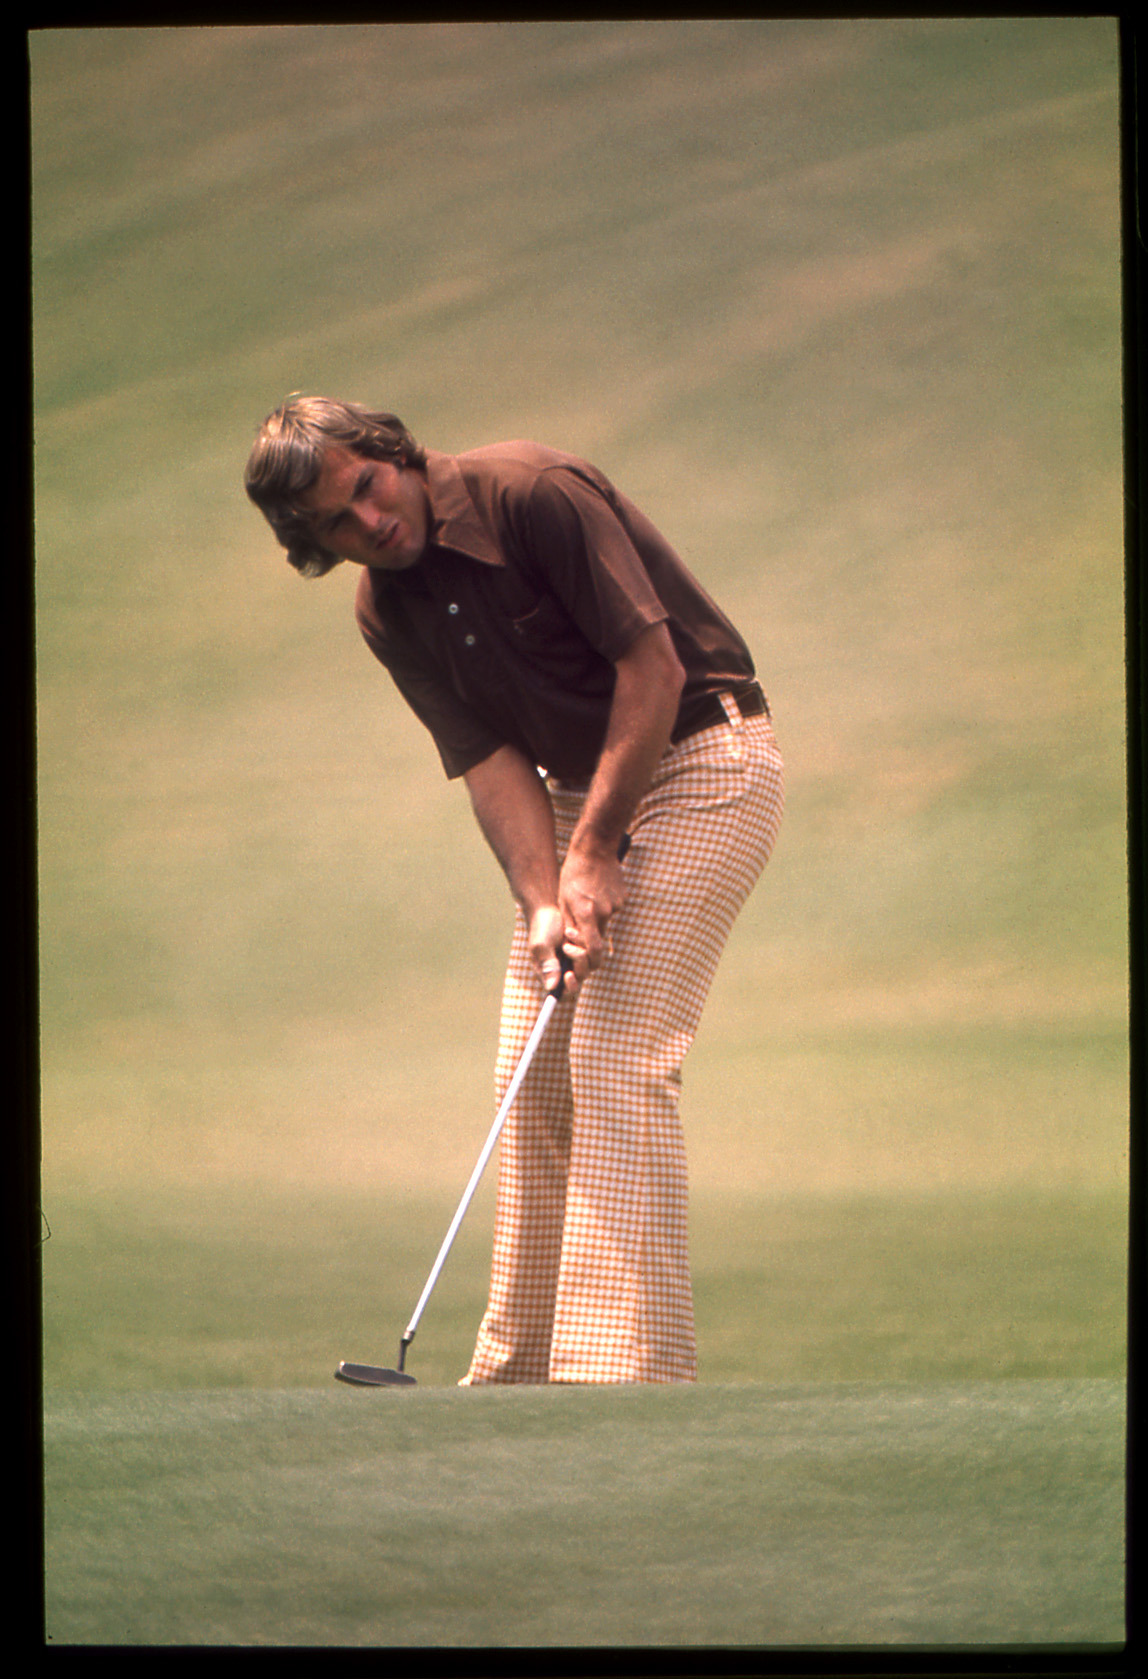 Lanny Wadkins putts during the 1974 Masters. Credit: Golf Digest Resource Center